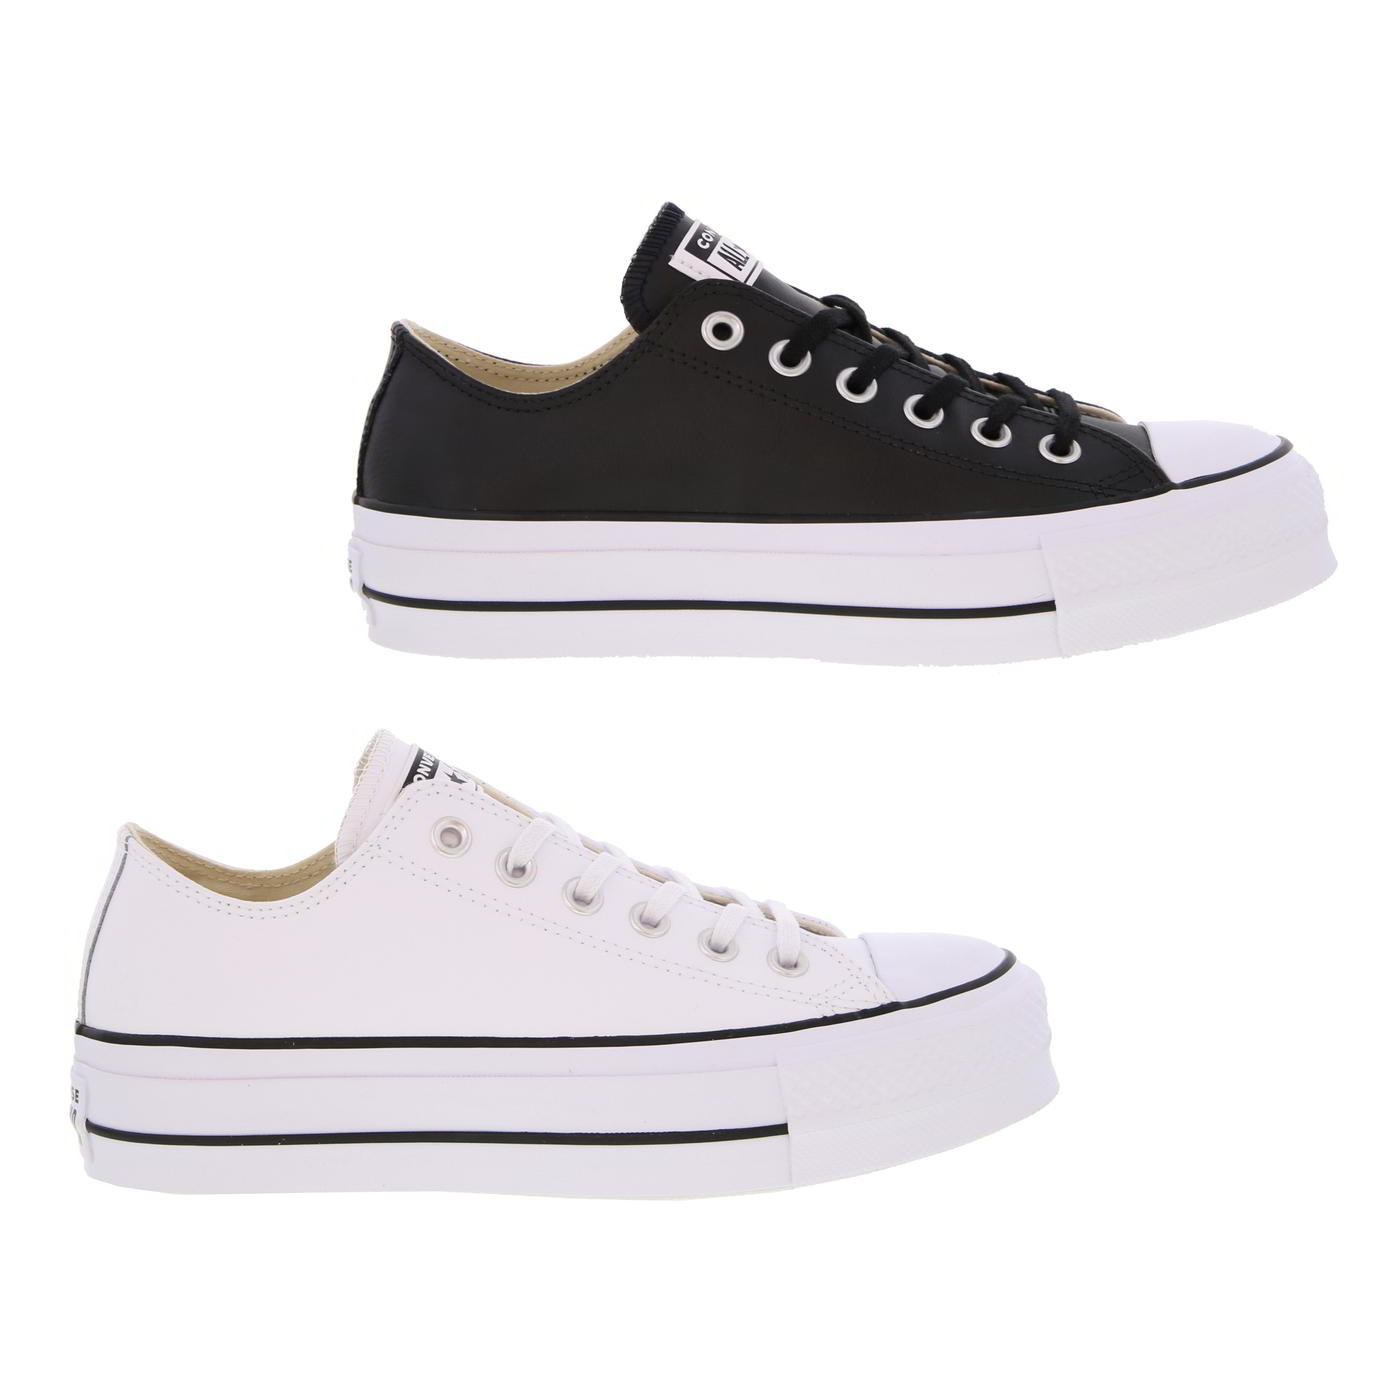 f174eff8e46805 Details about Converse All Star Low Womens Lift Ox Platform Chunky Shoes Trainers  Size 4-8